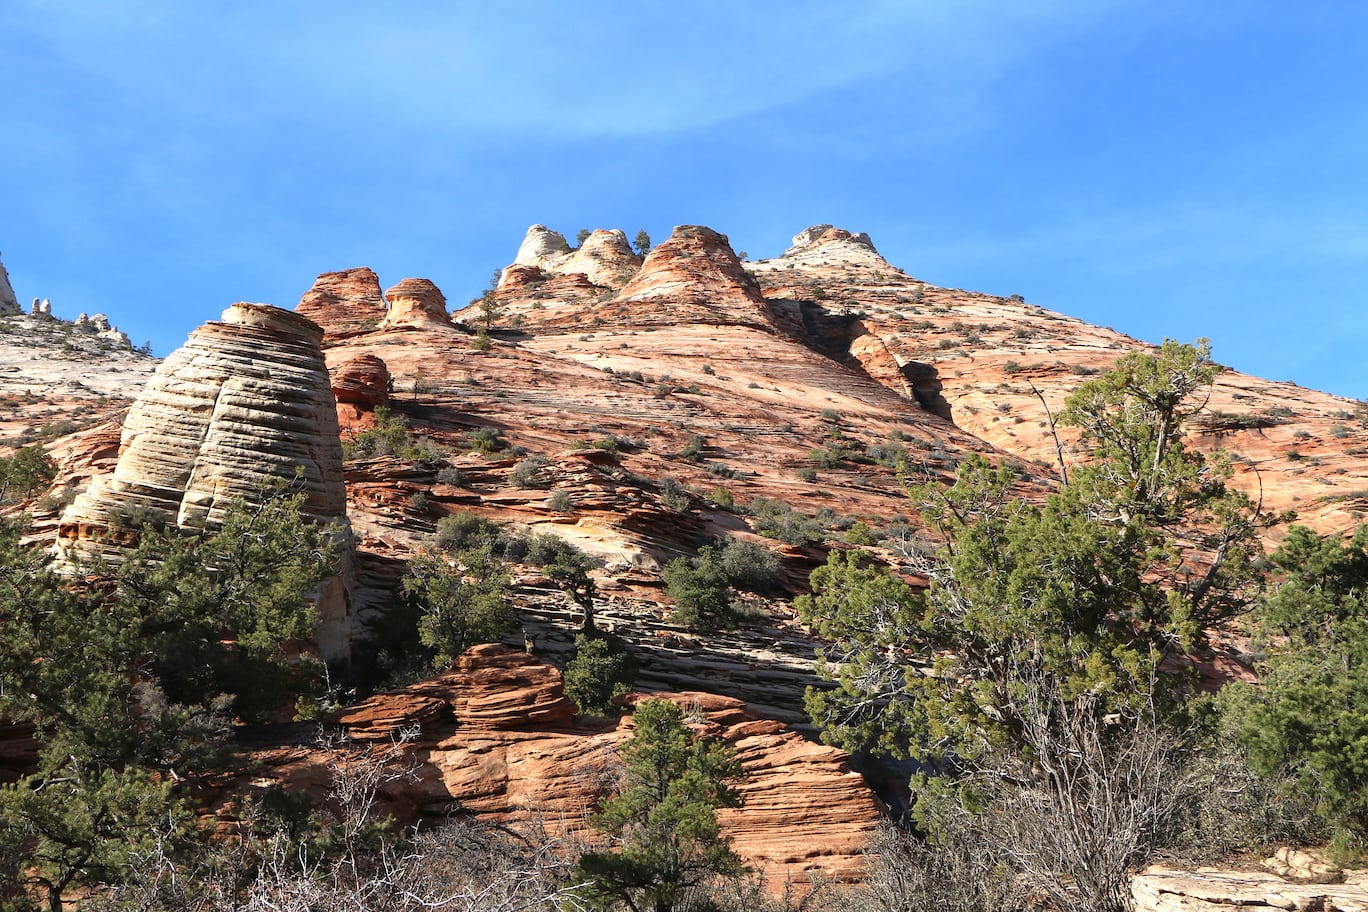 Beautiful scenery on the Canyon Overlook Trail